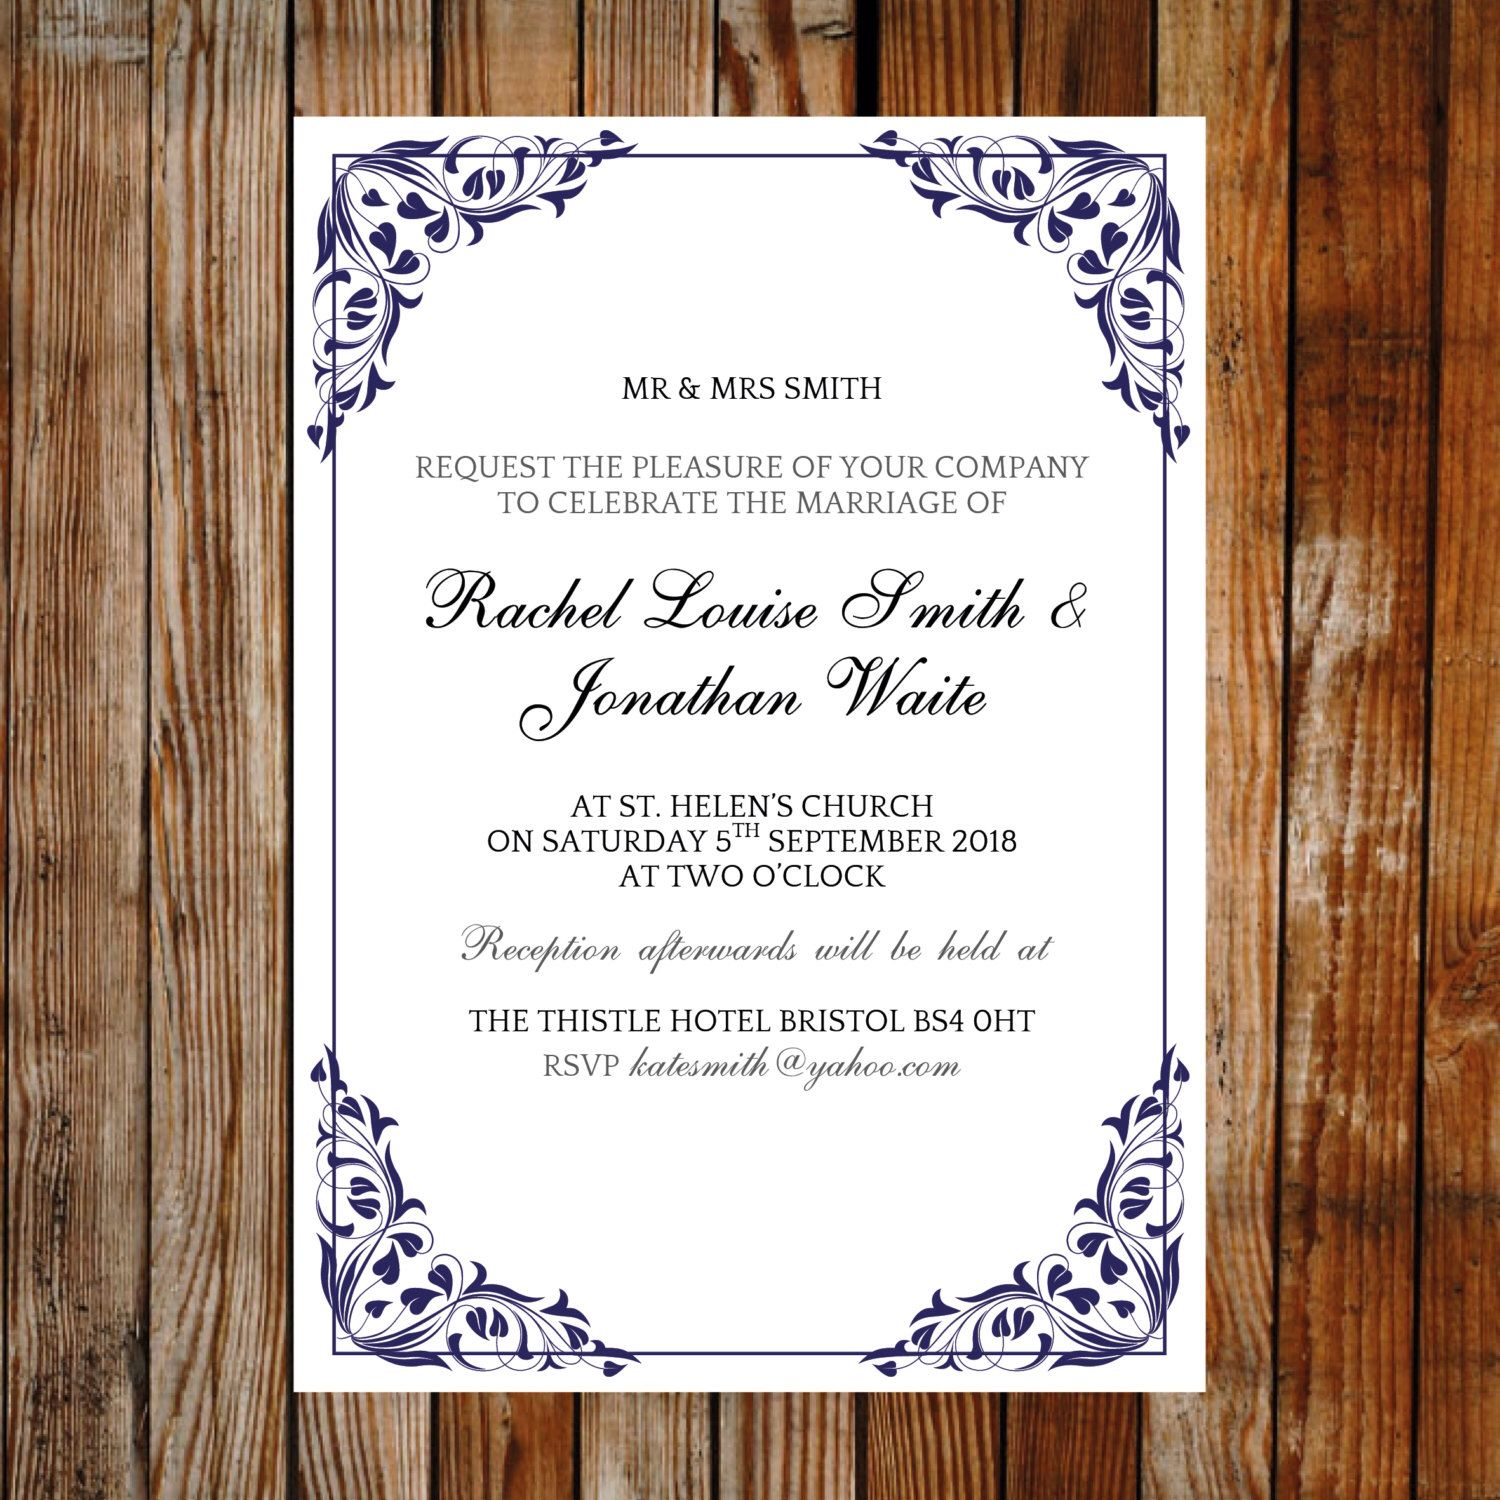 Wedding invitation template flora blue download printable wedding invitation template flora blue download printable microsoft word template ready to edit and print monicamarmolfo Images